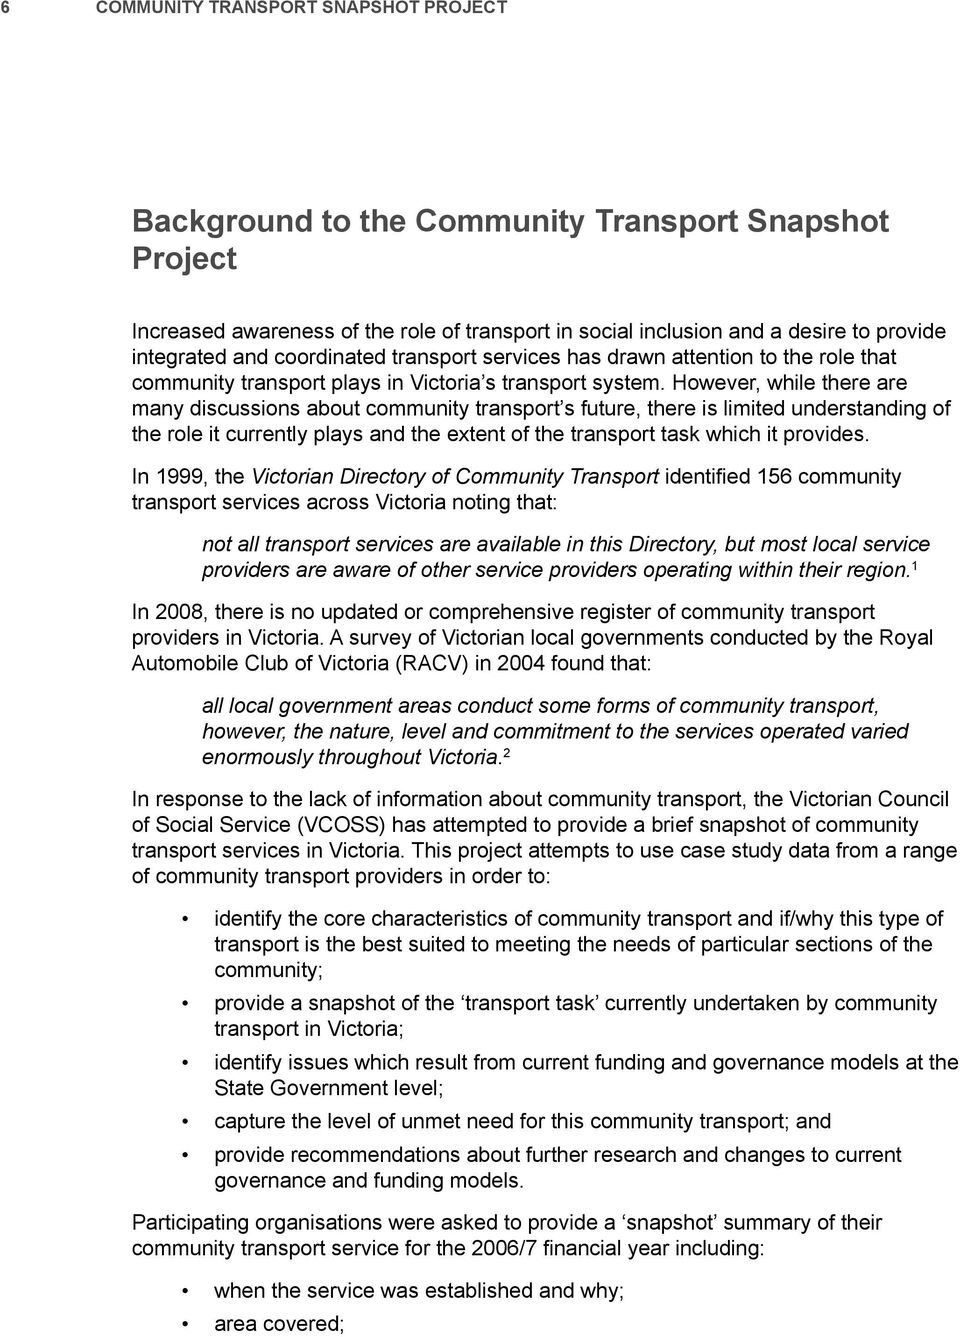 However, while there are many discussions about community transport s future, there is limited understanding of the role it currently plays and the extent of the transport task which it provides.